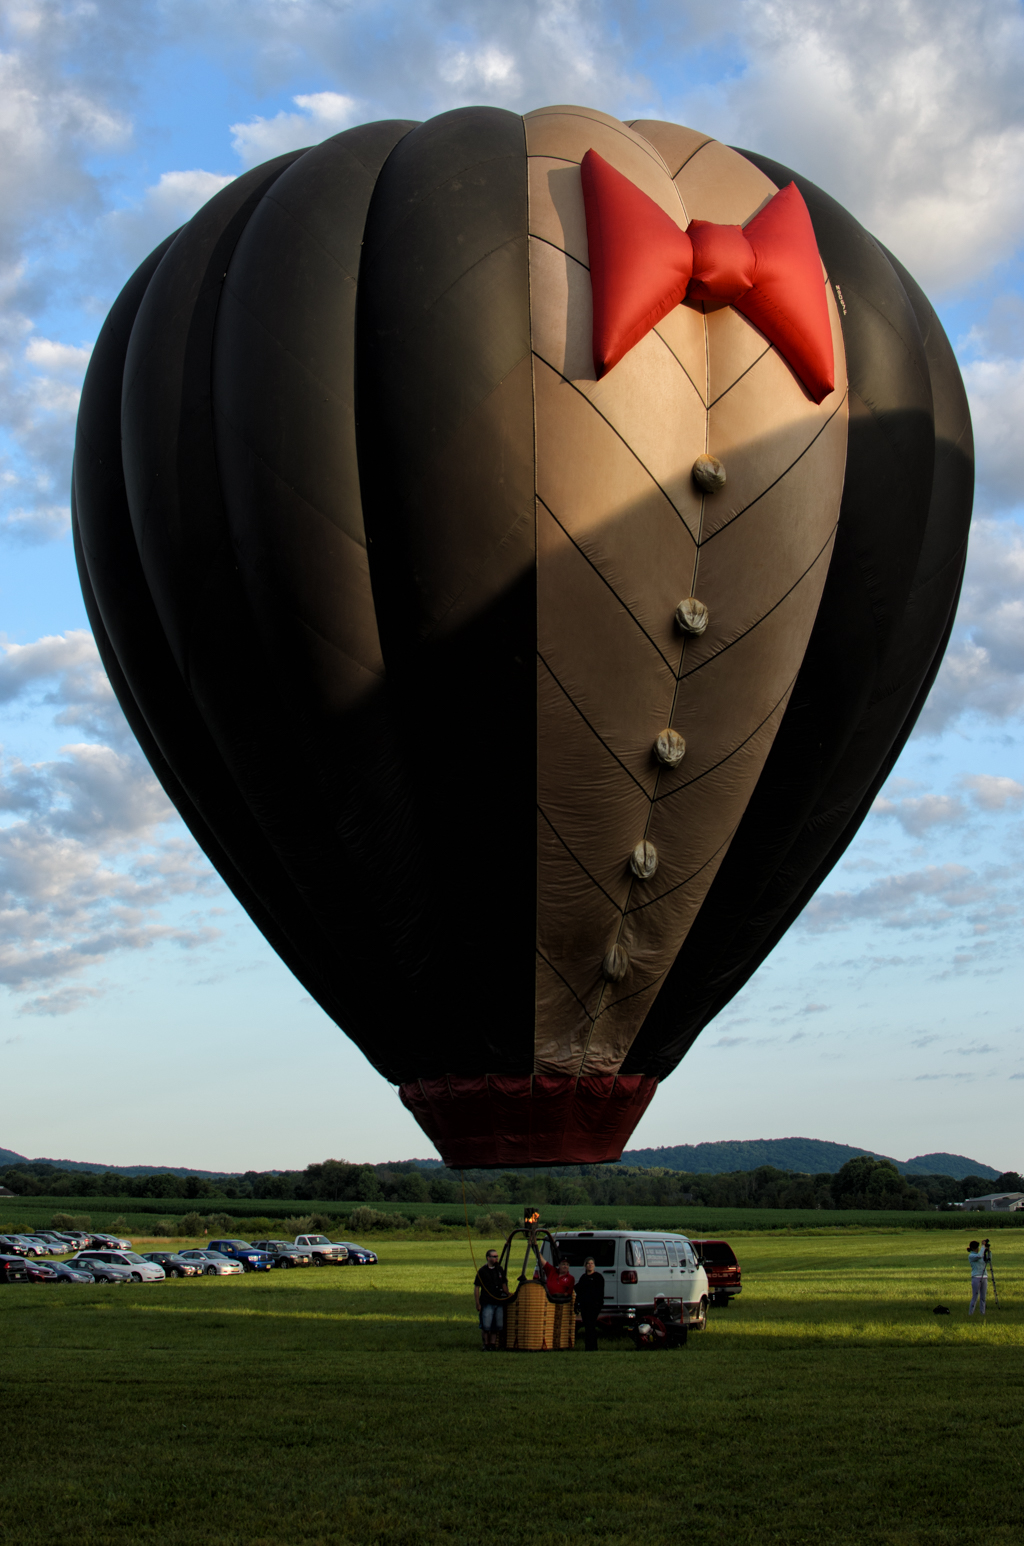 32nd annual New Jersey Festival of Ballooning, wpid14592 NIKON D5100 20140725 1029 Edit